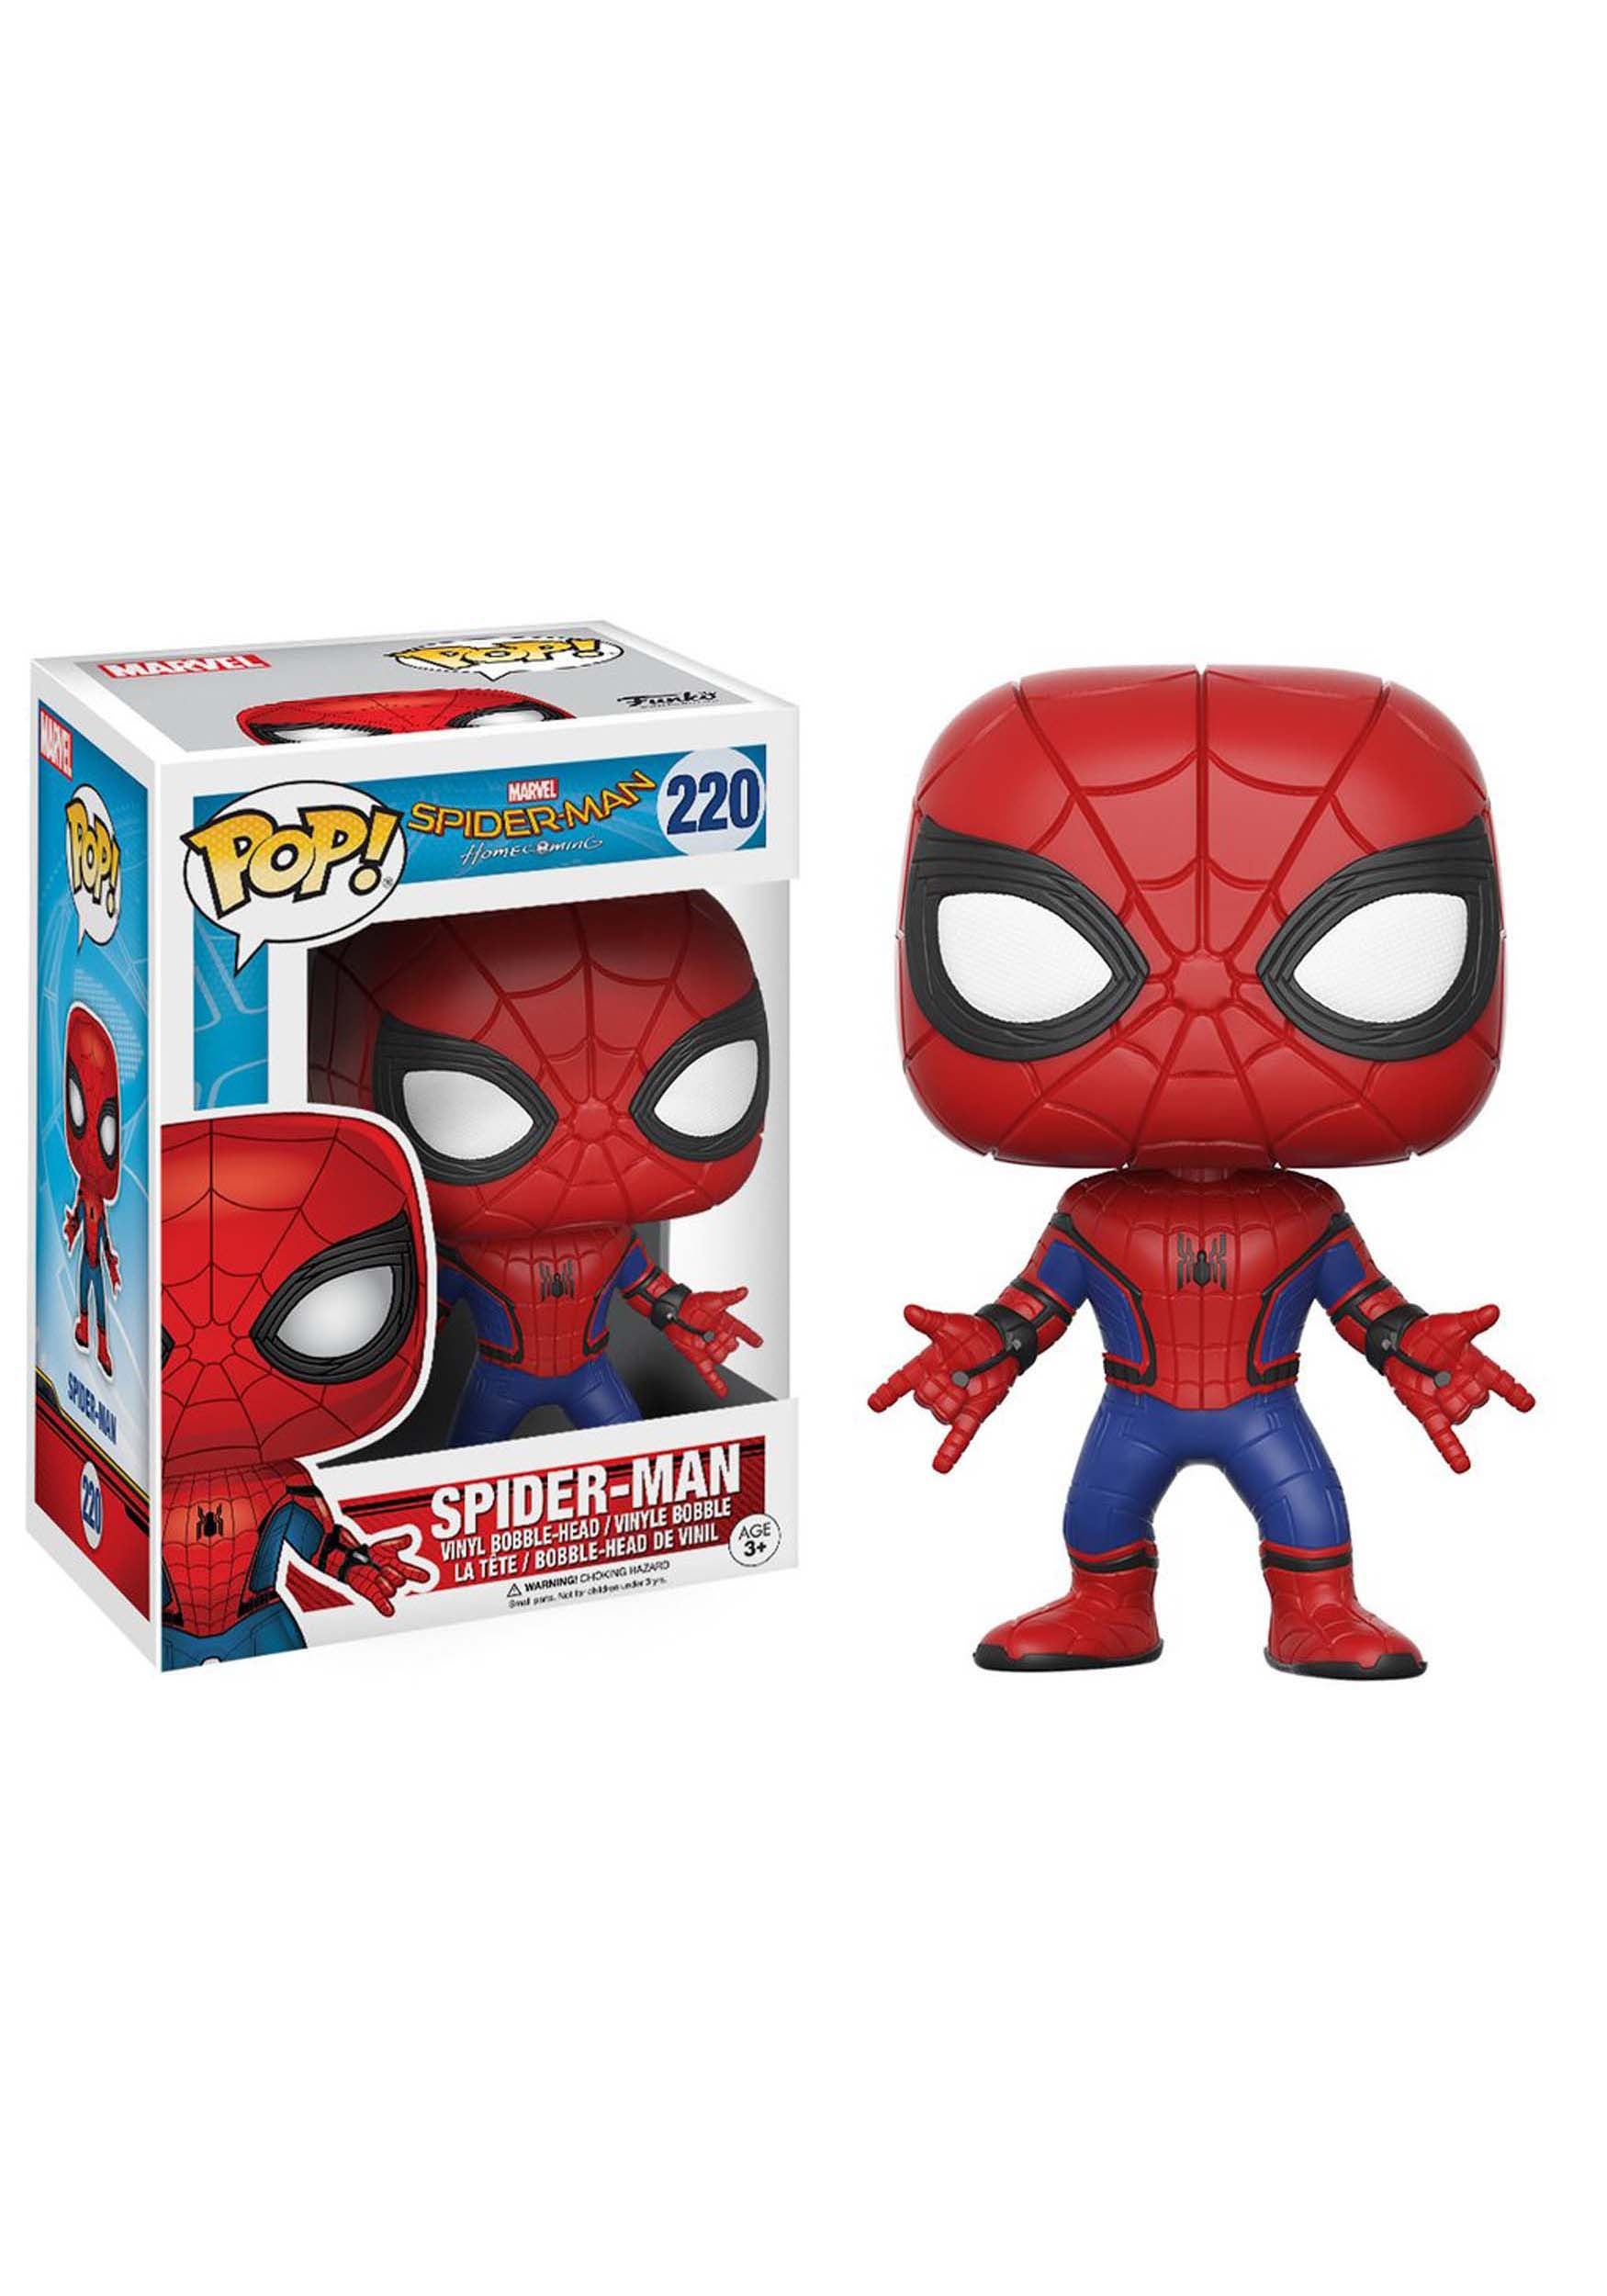 Spider-Man Homecoming Spider-Man POP! Bobblehead Figure FN13317